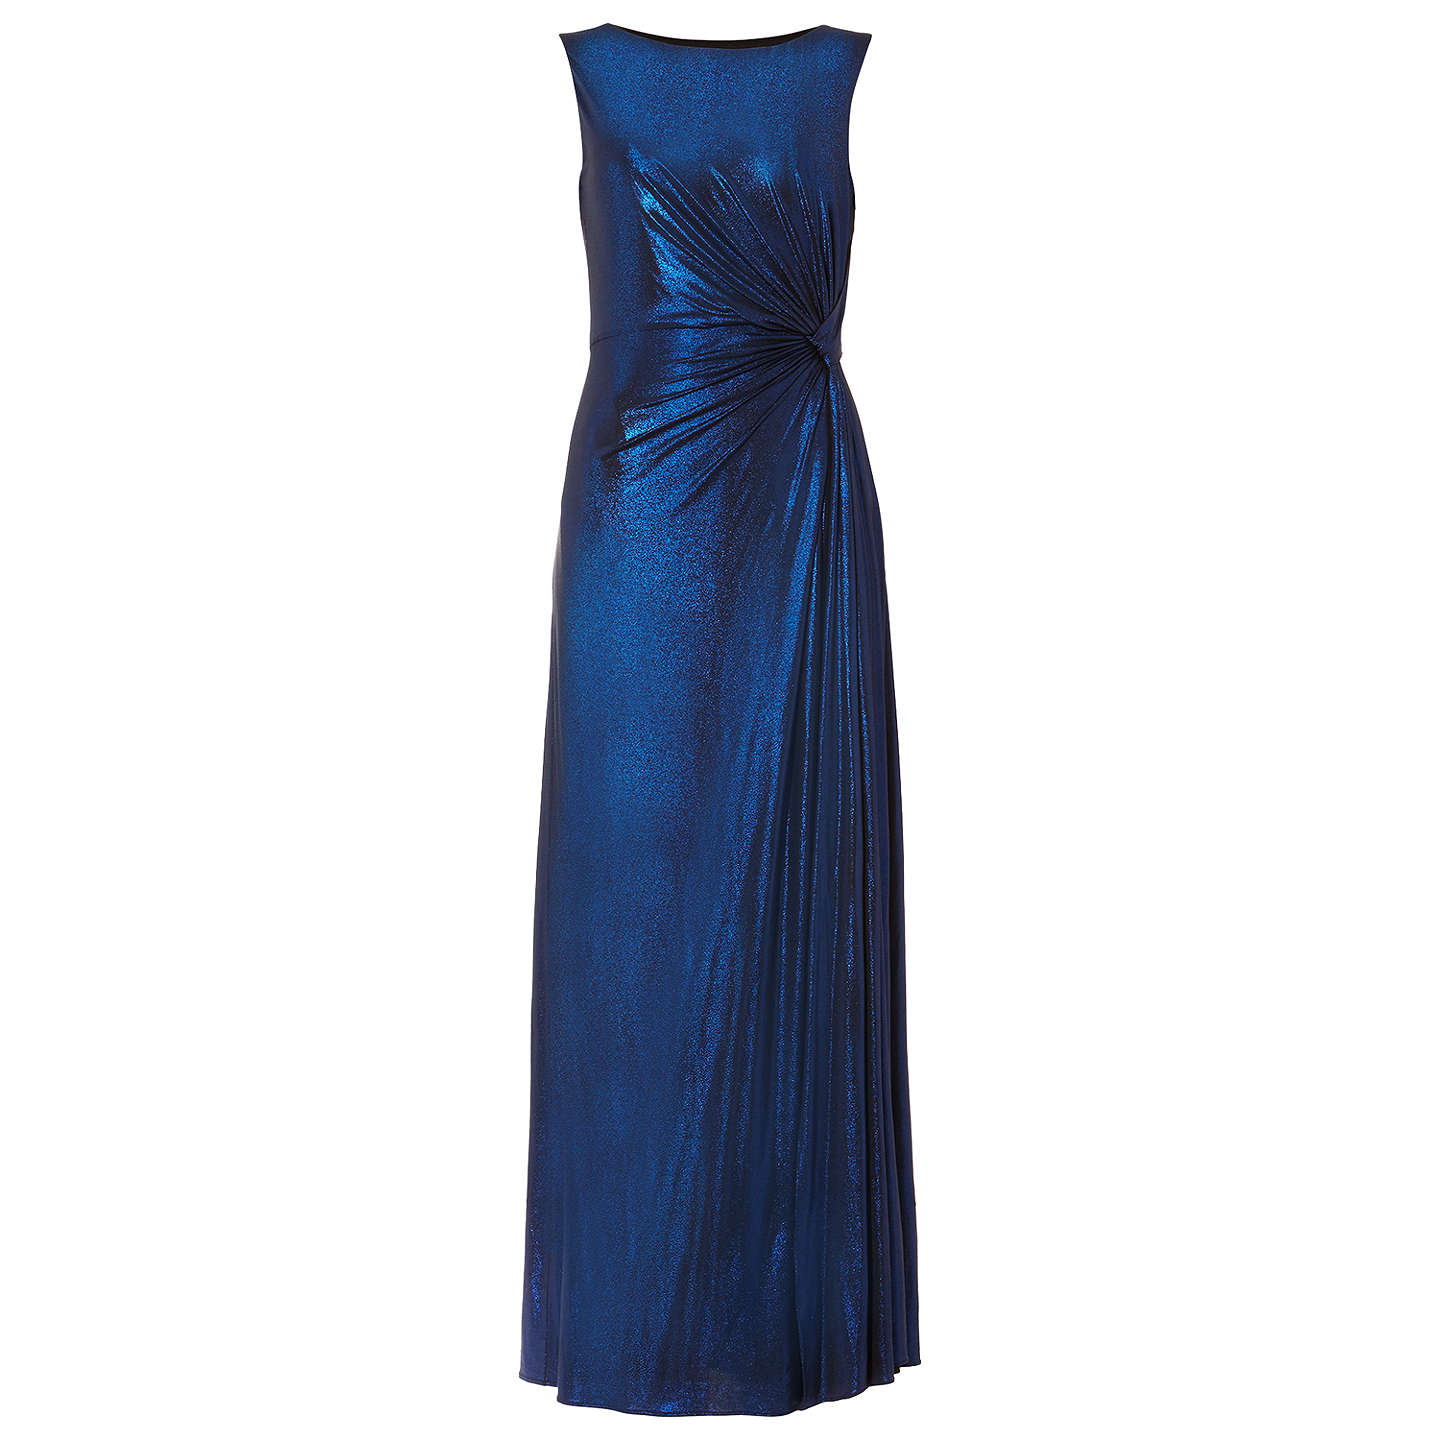 BuyPhase Eight Caro Shimmer Full Length Dress, Cobalt, 6 Online at johnlewis.com